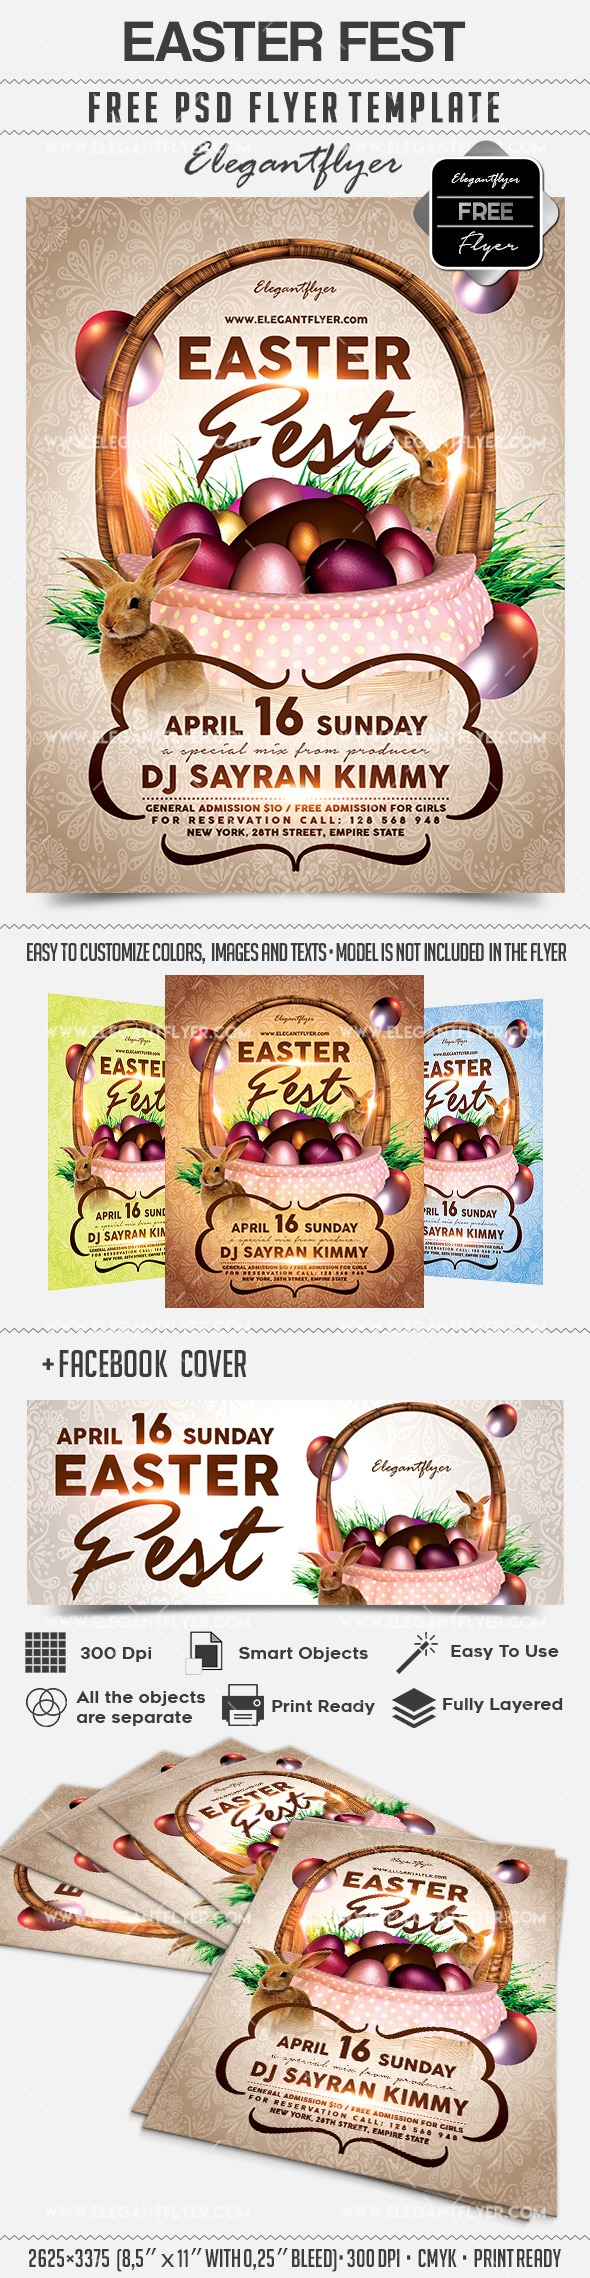 Easter Fest – Free Flyer PSD Template